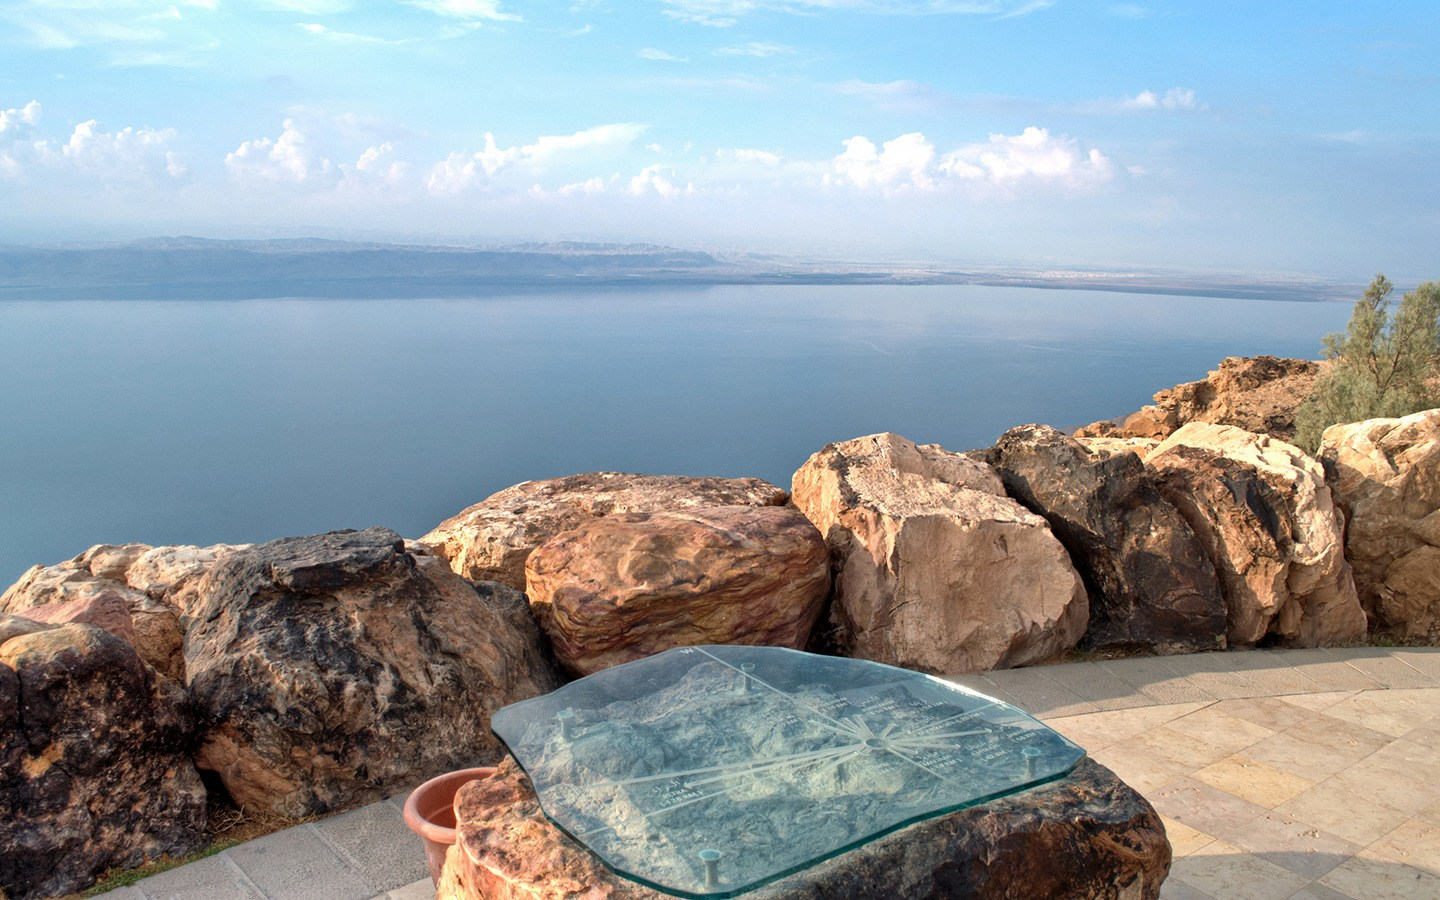 Views from the Dead Sea Panoramic Complex in Jordan